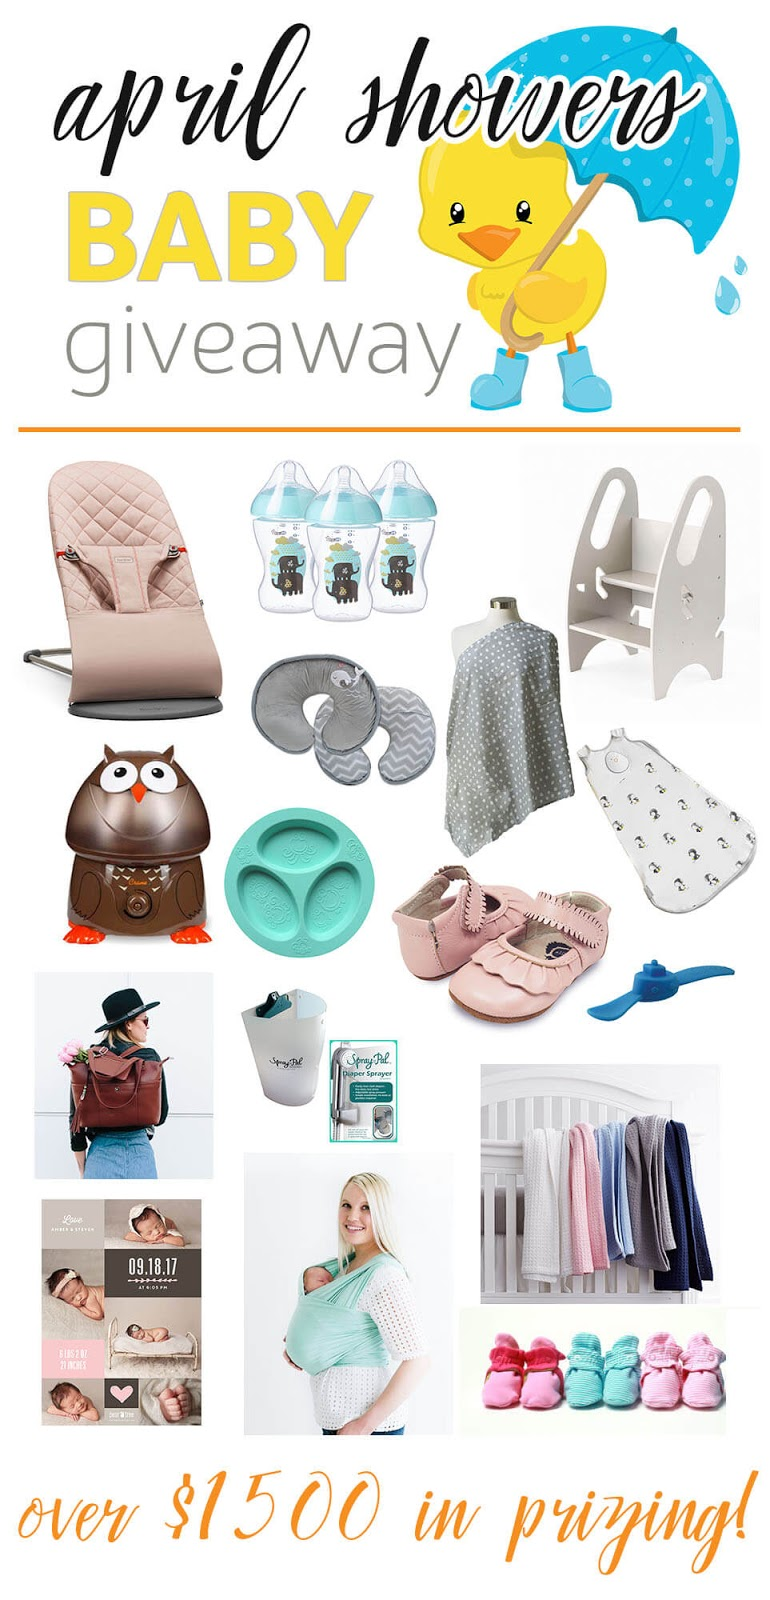 April Shower Baby Giveaway - over $1500 in prizes!